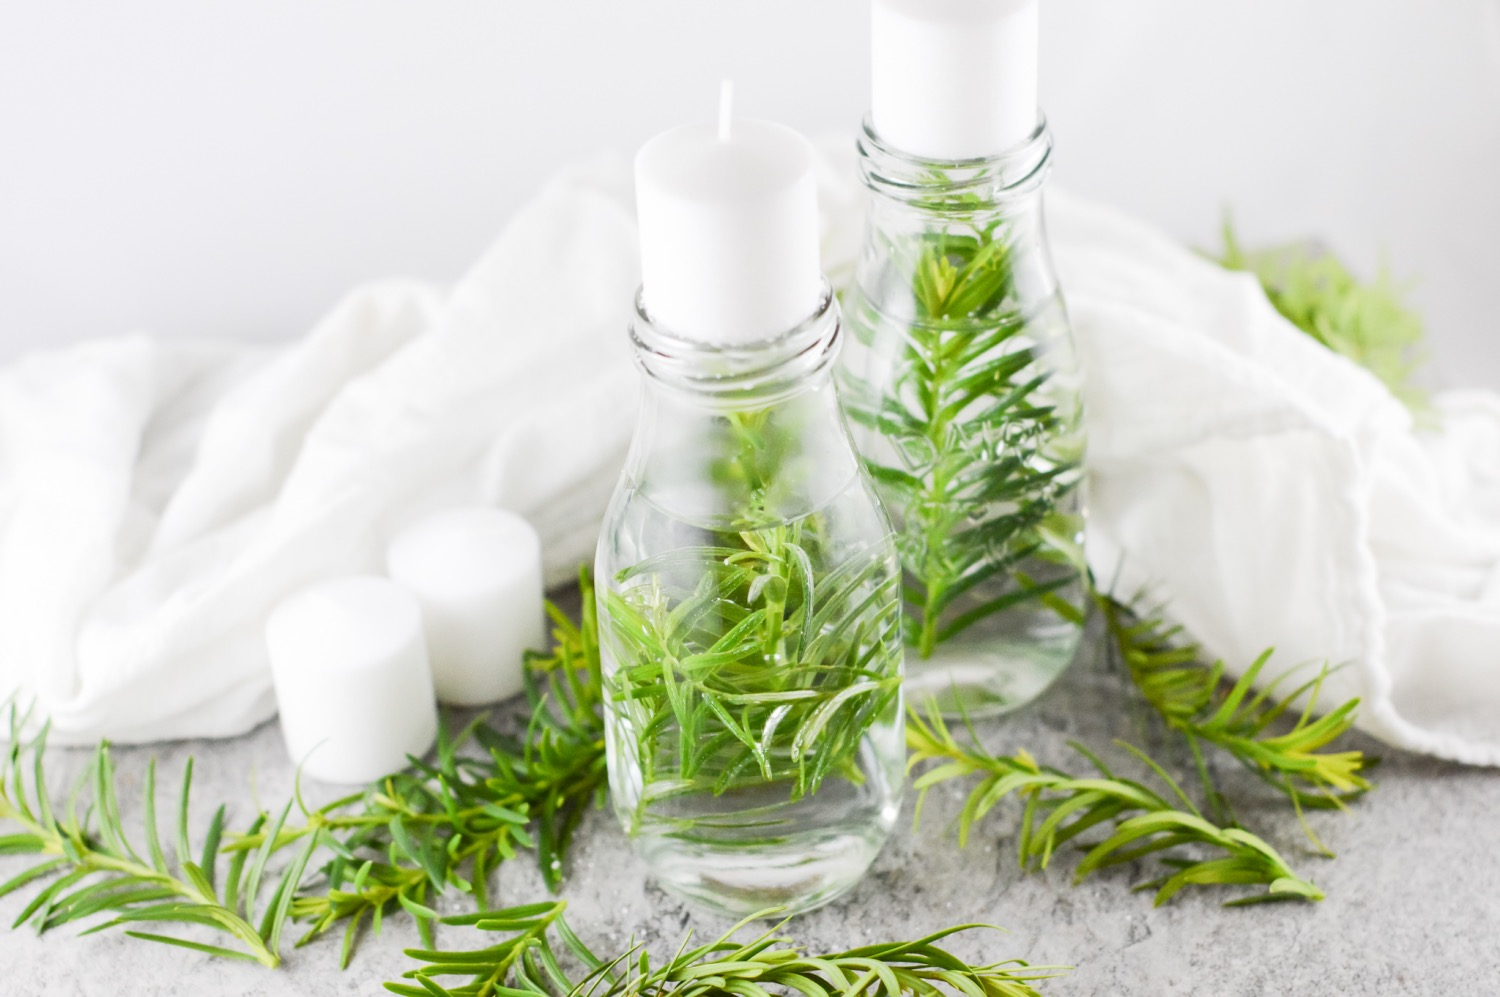 finished diy homemade water candles with fresh herbs